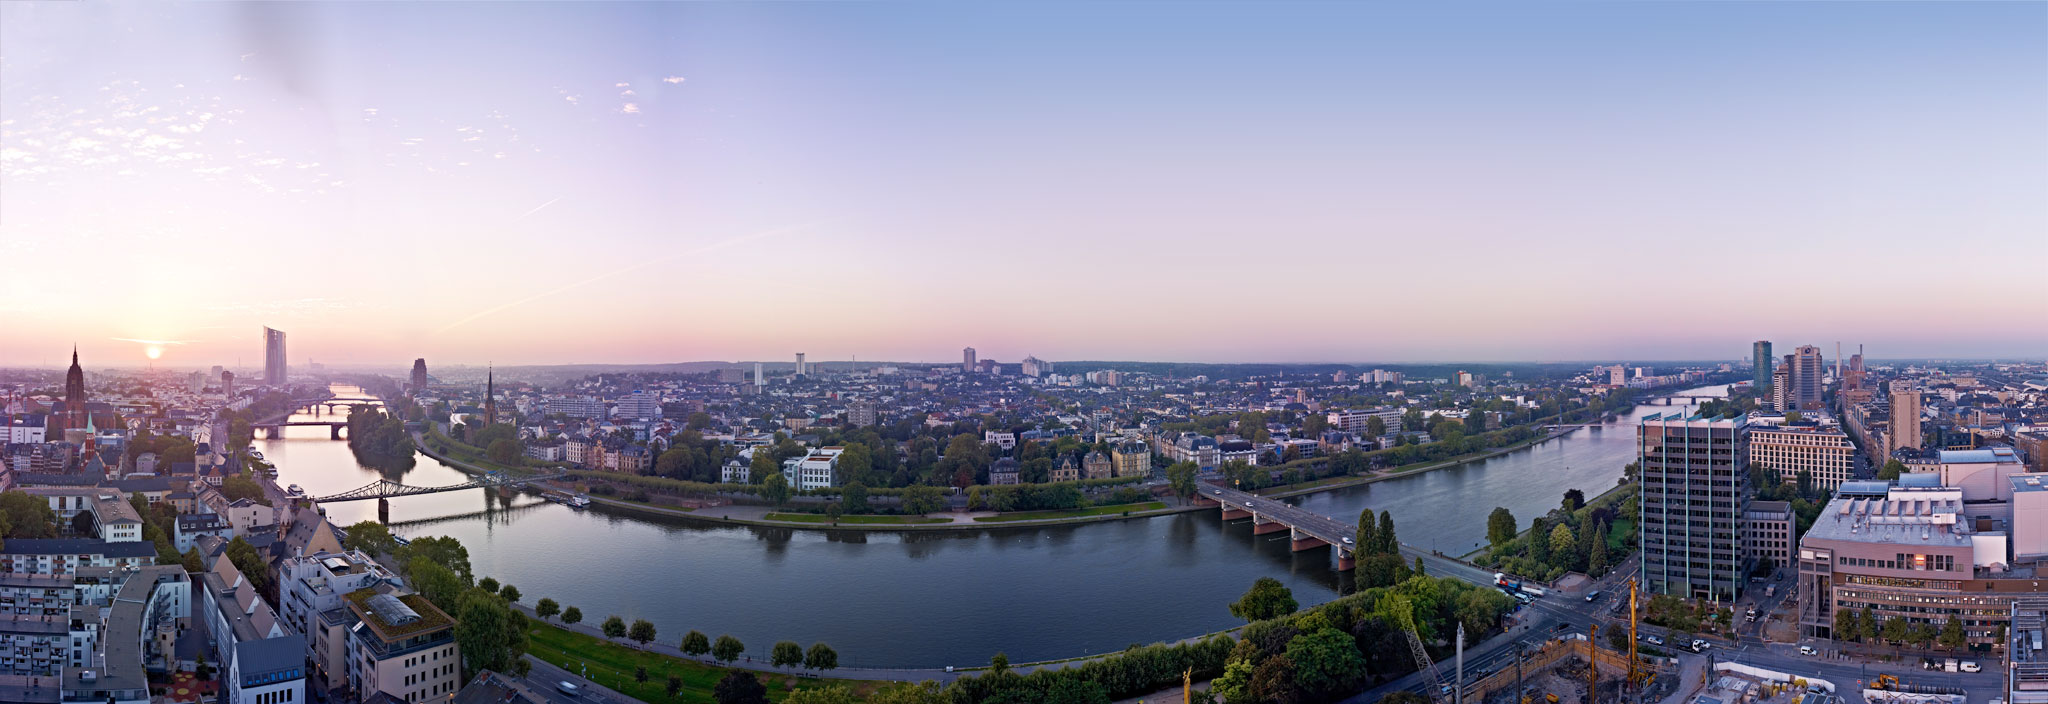 Panorama of the Main river and Sachsenhausen in Frankfurt am Main